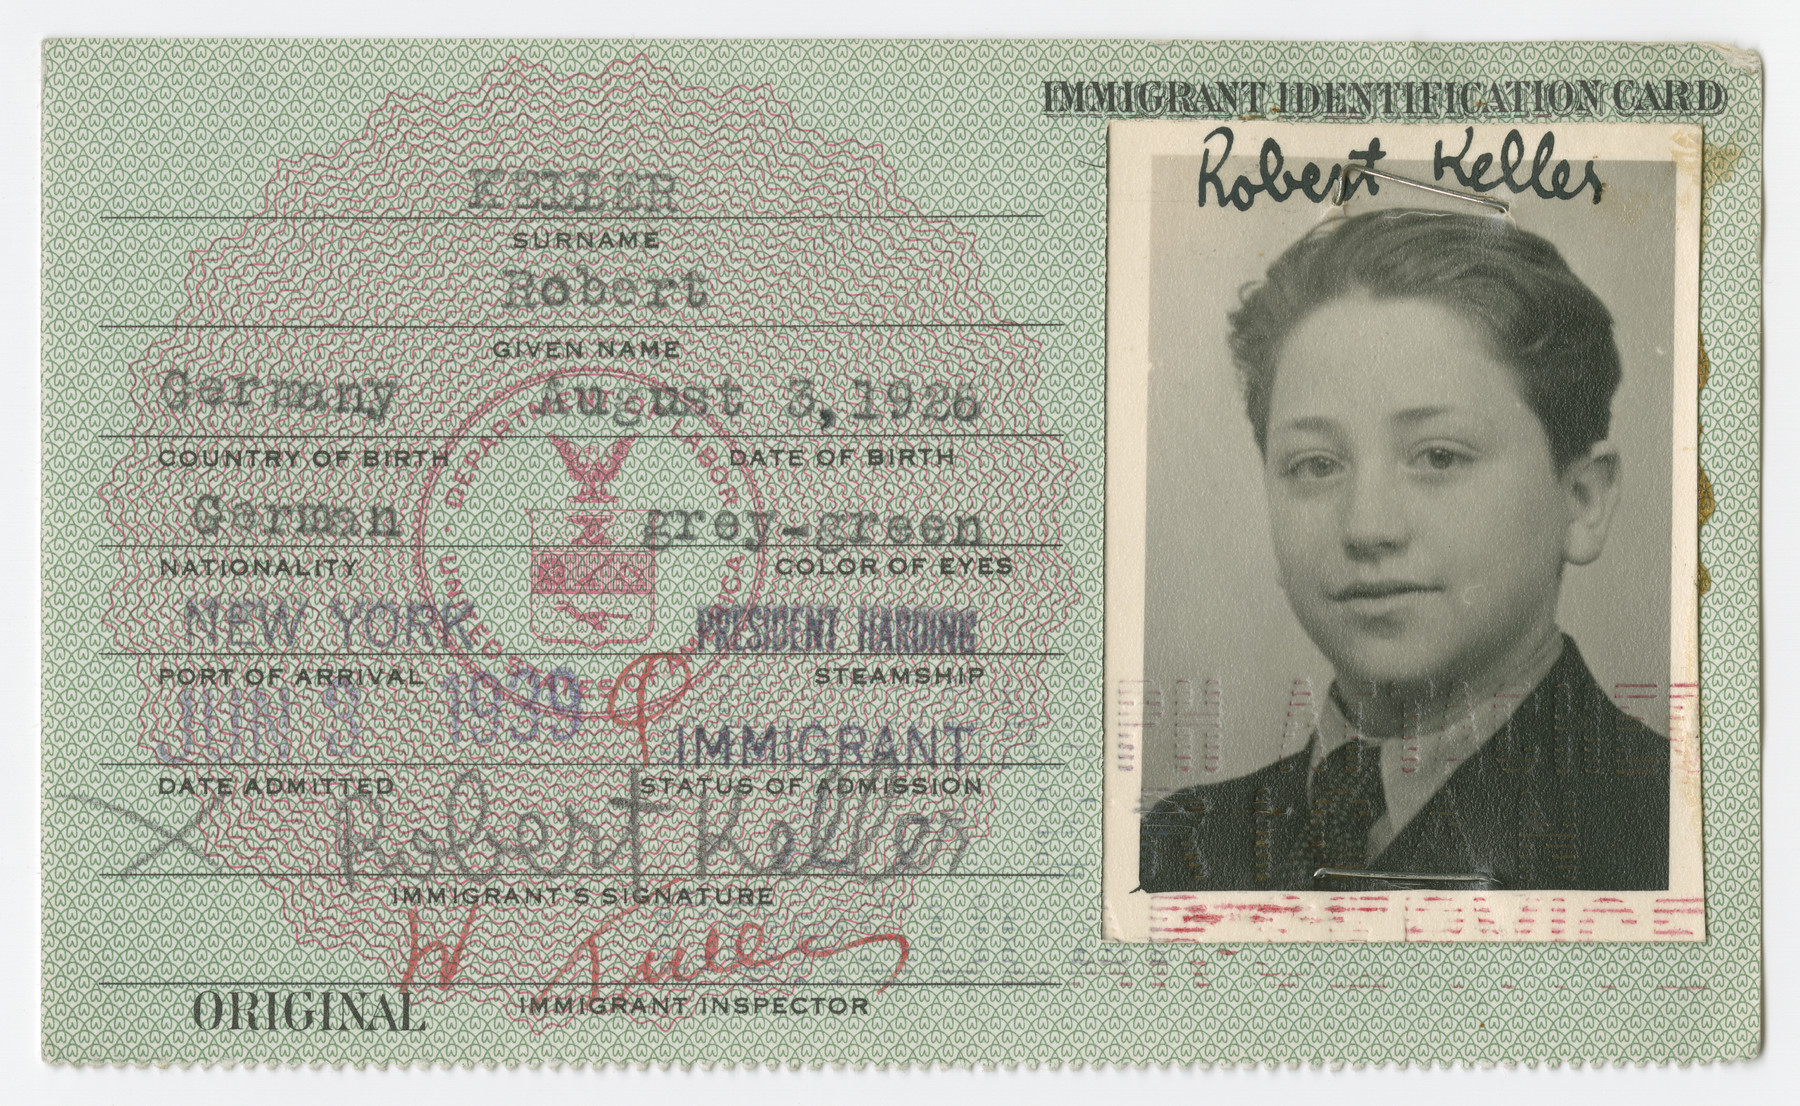 United States Immigrant Identification Card issued to Robert Keller.  It states he was born in Germany though he was born in Vienna.